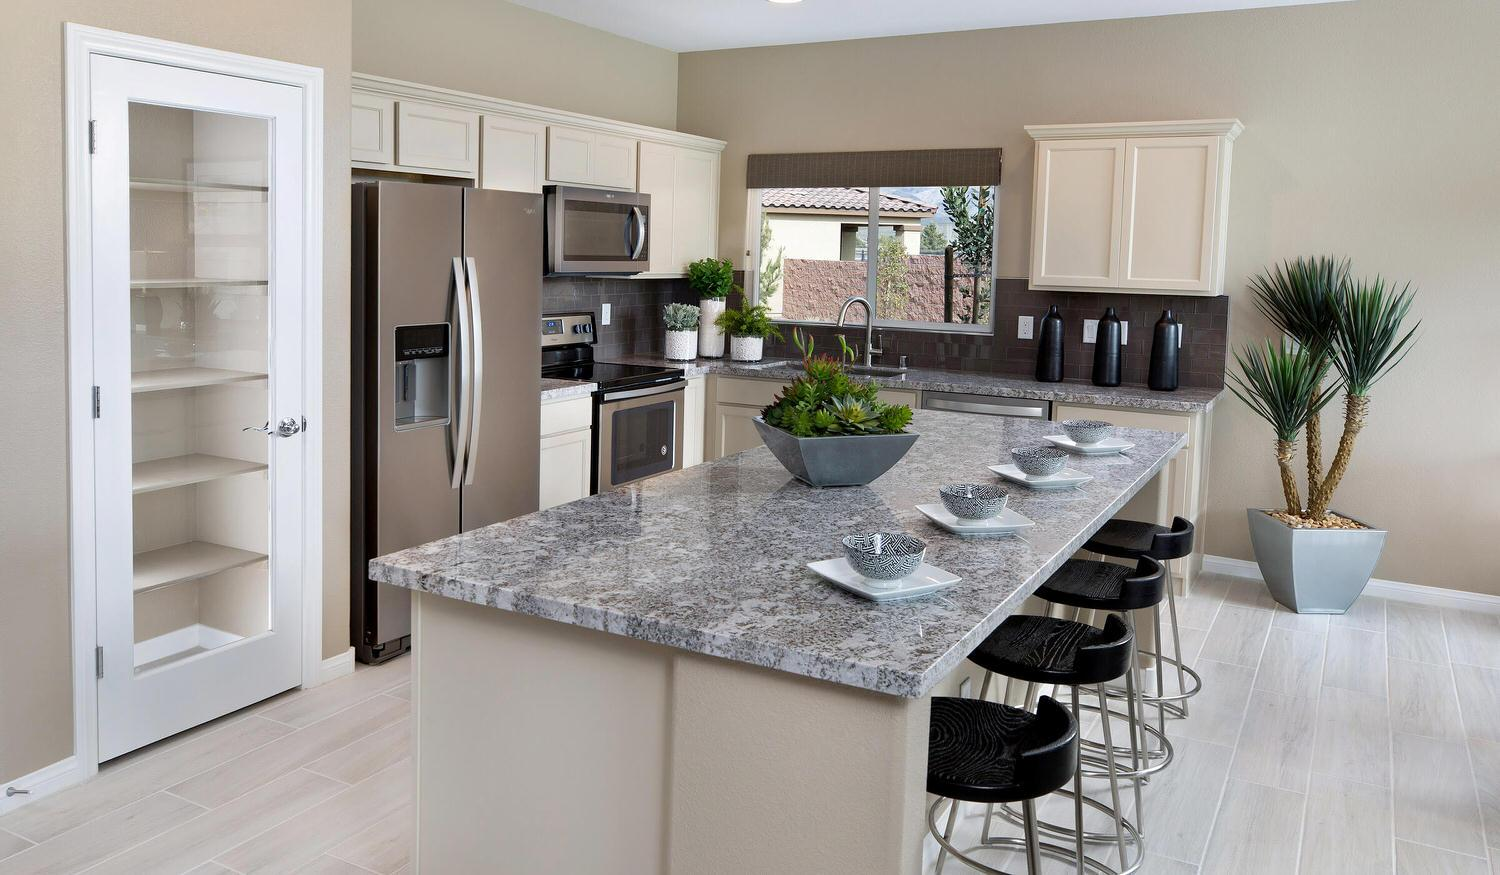 Kitchen featured in the Plan 2 By Taylor Morrison in Las Vegas, NV